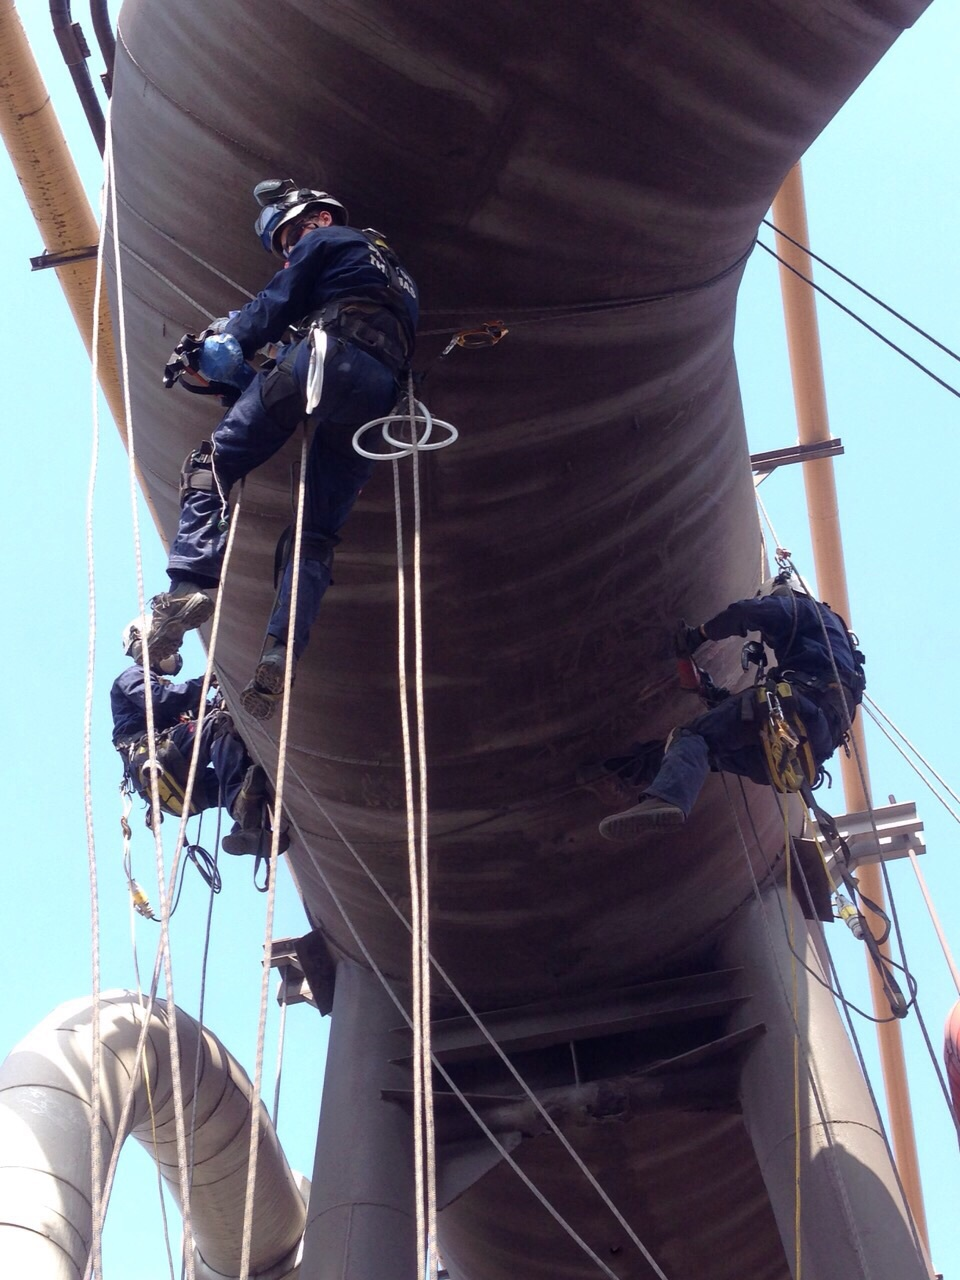 <Aspect3Sixty Industrial rope access and pipeline inspection Paint removal>